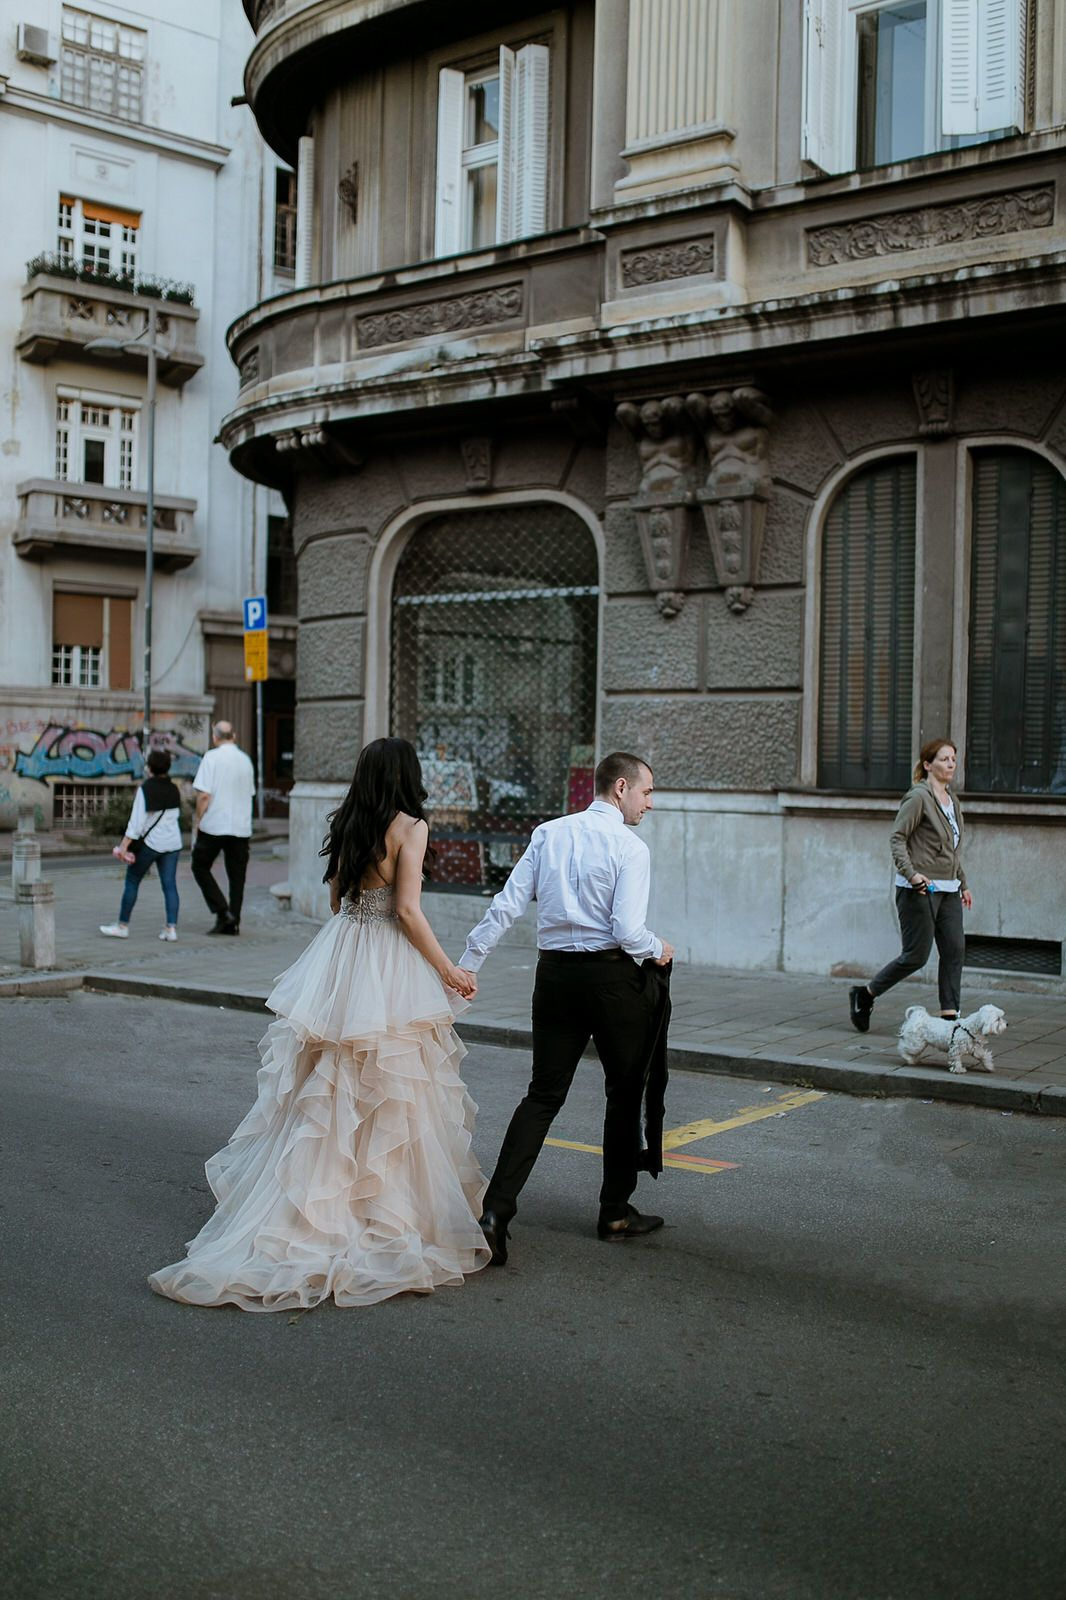 Bride and groom in walking in a romantic city